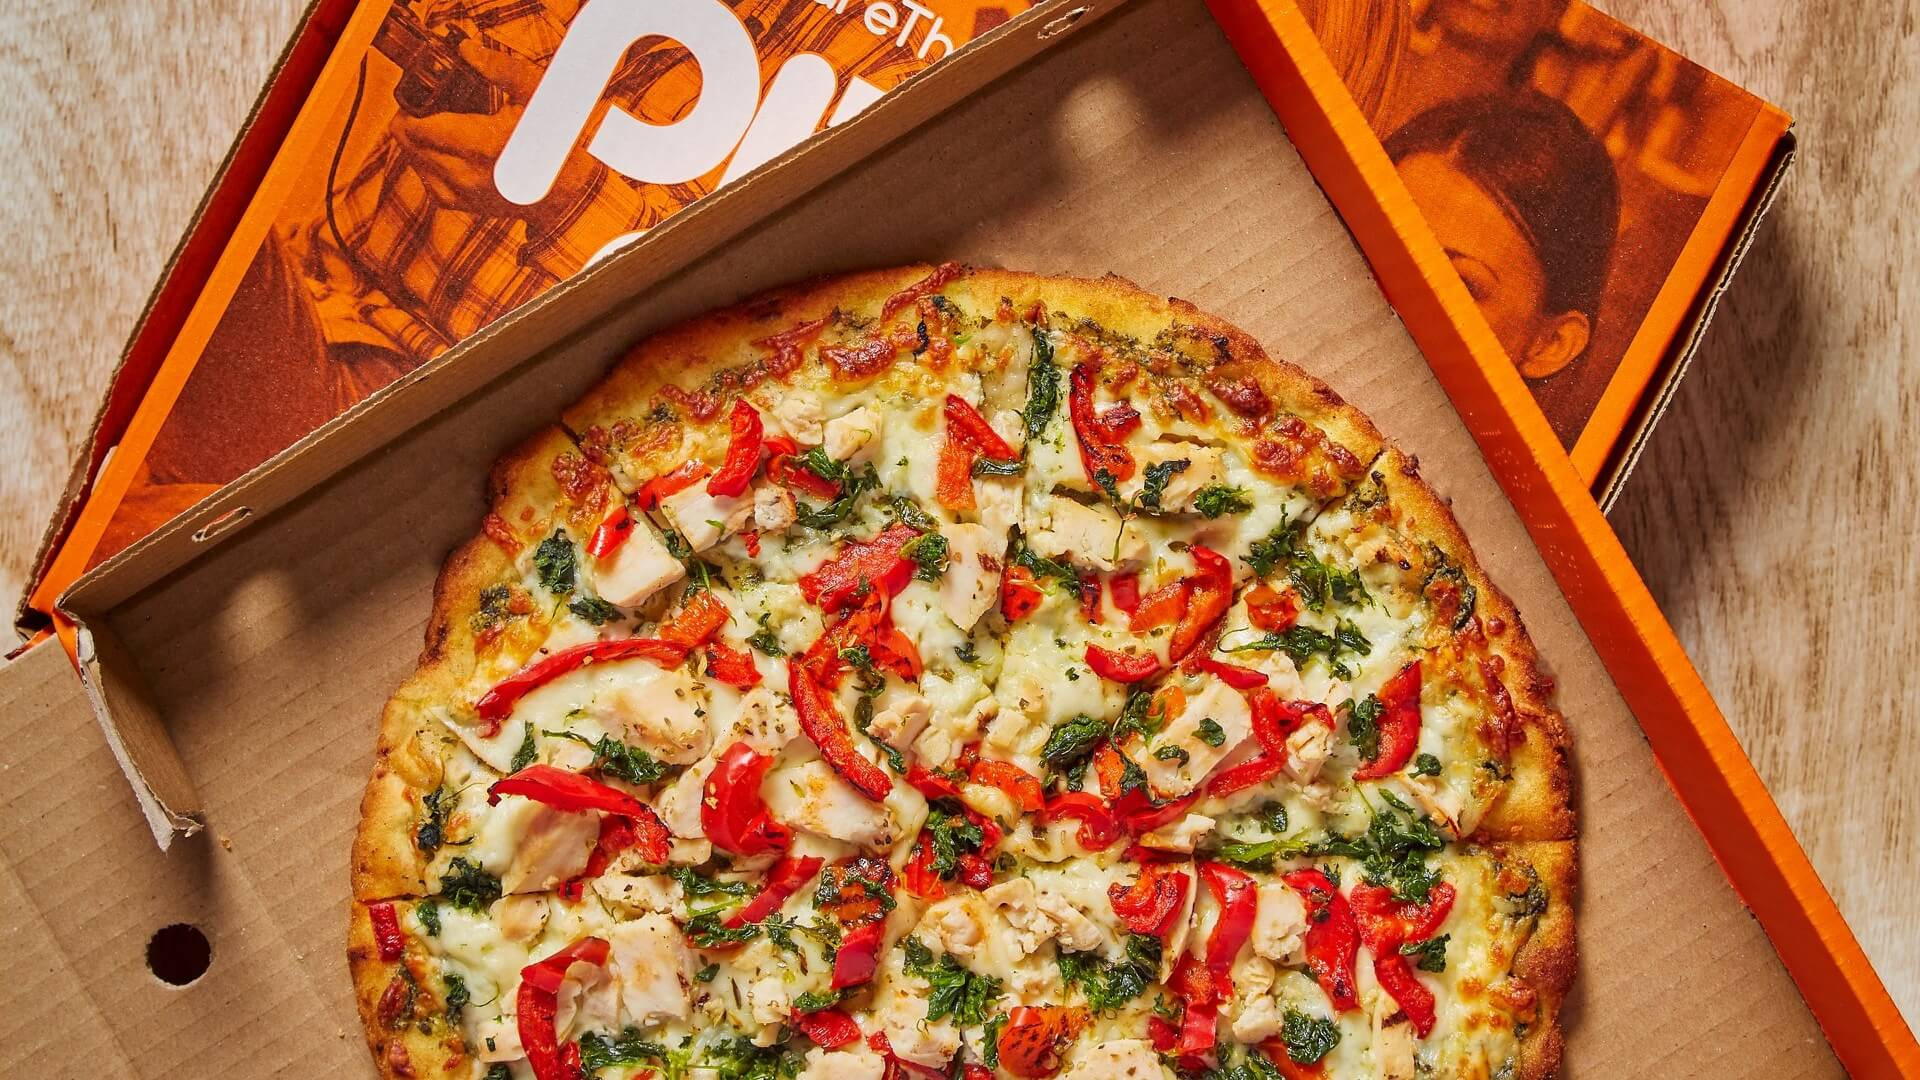 Vegan-Friendly Pizza Chain Expands to 6 New Canadian Locations